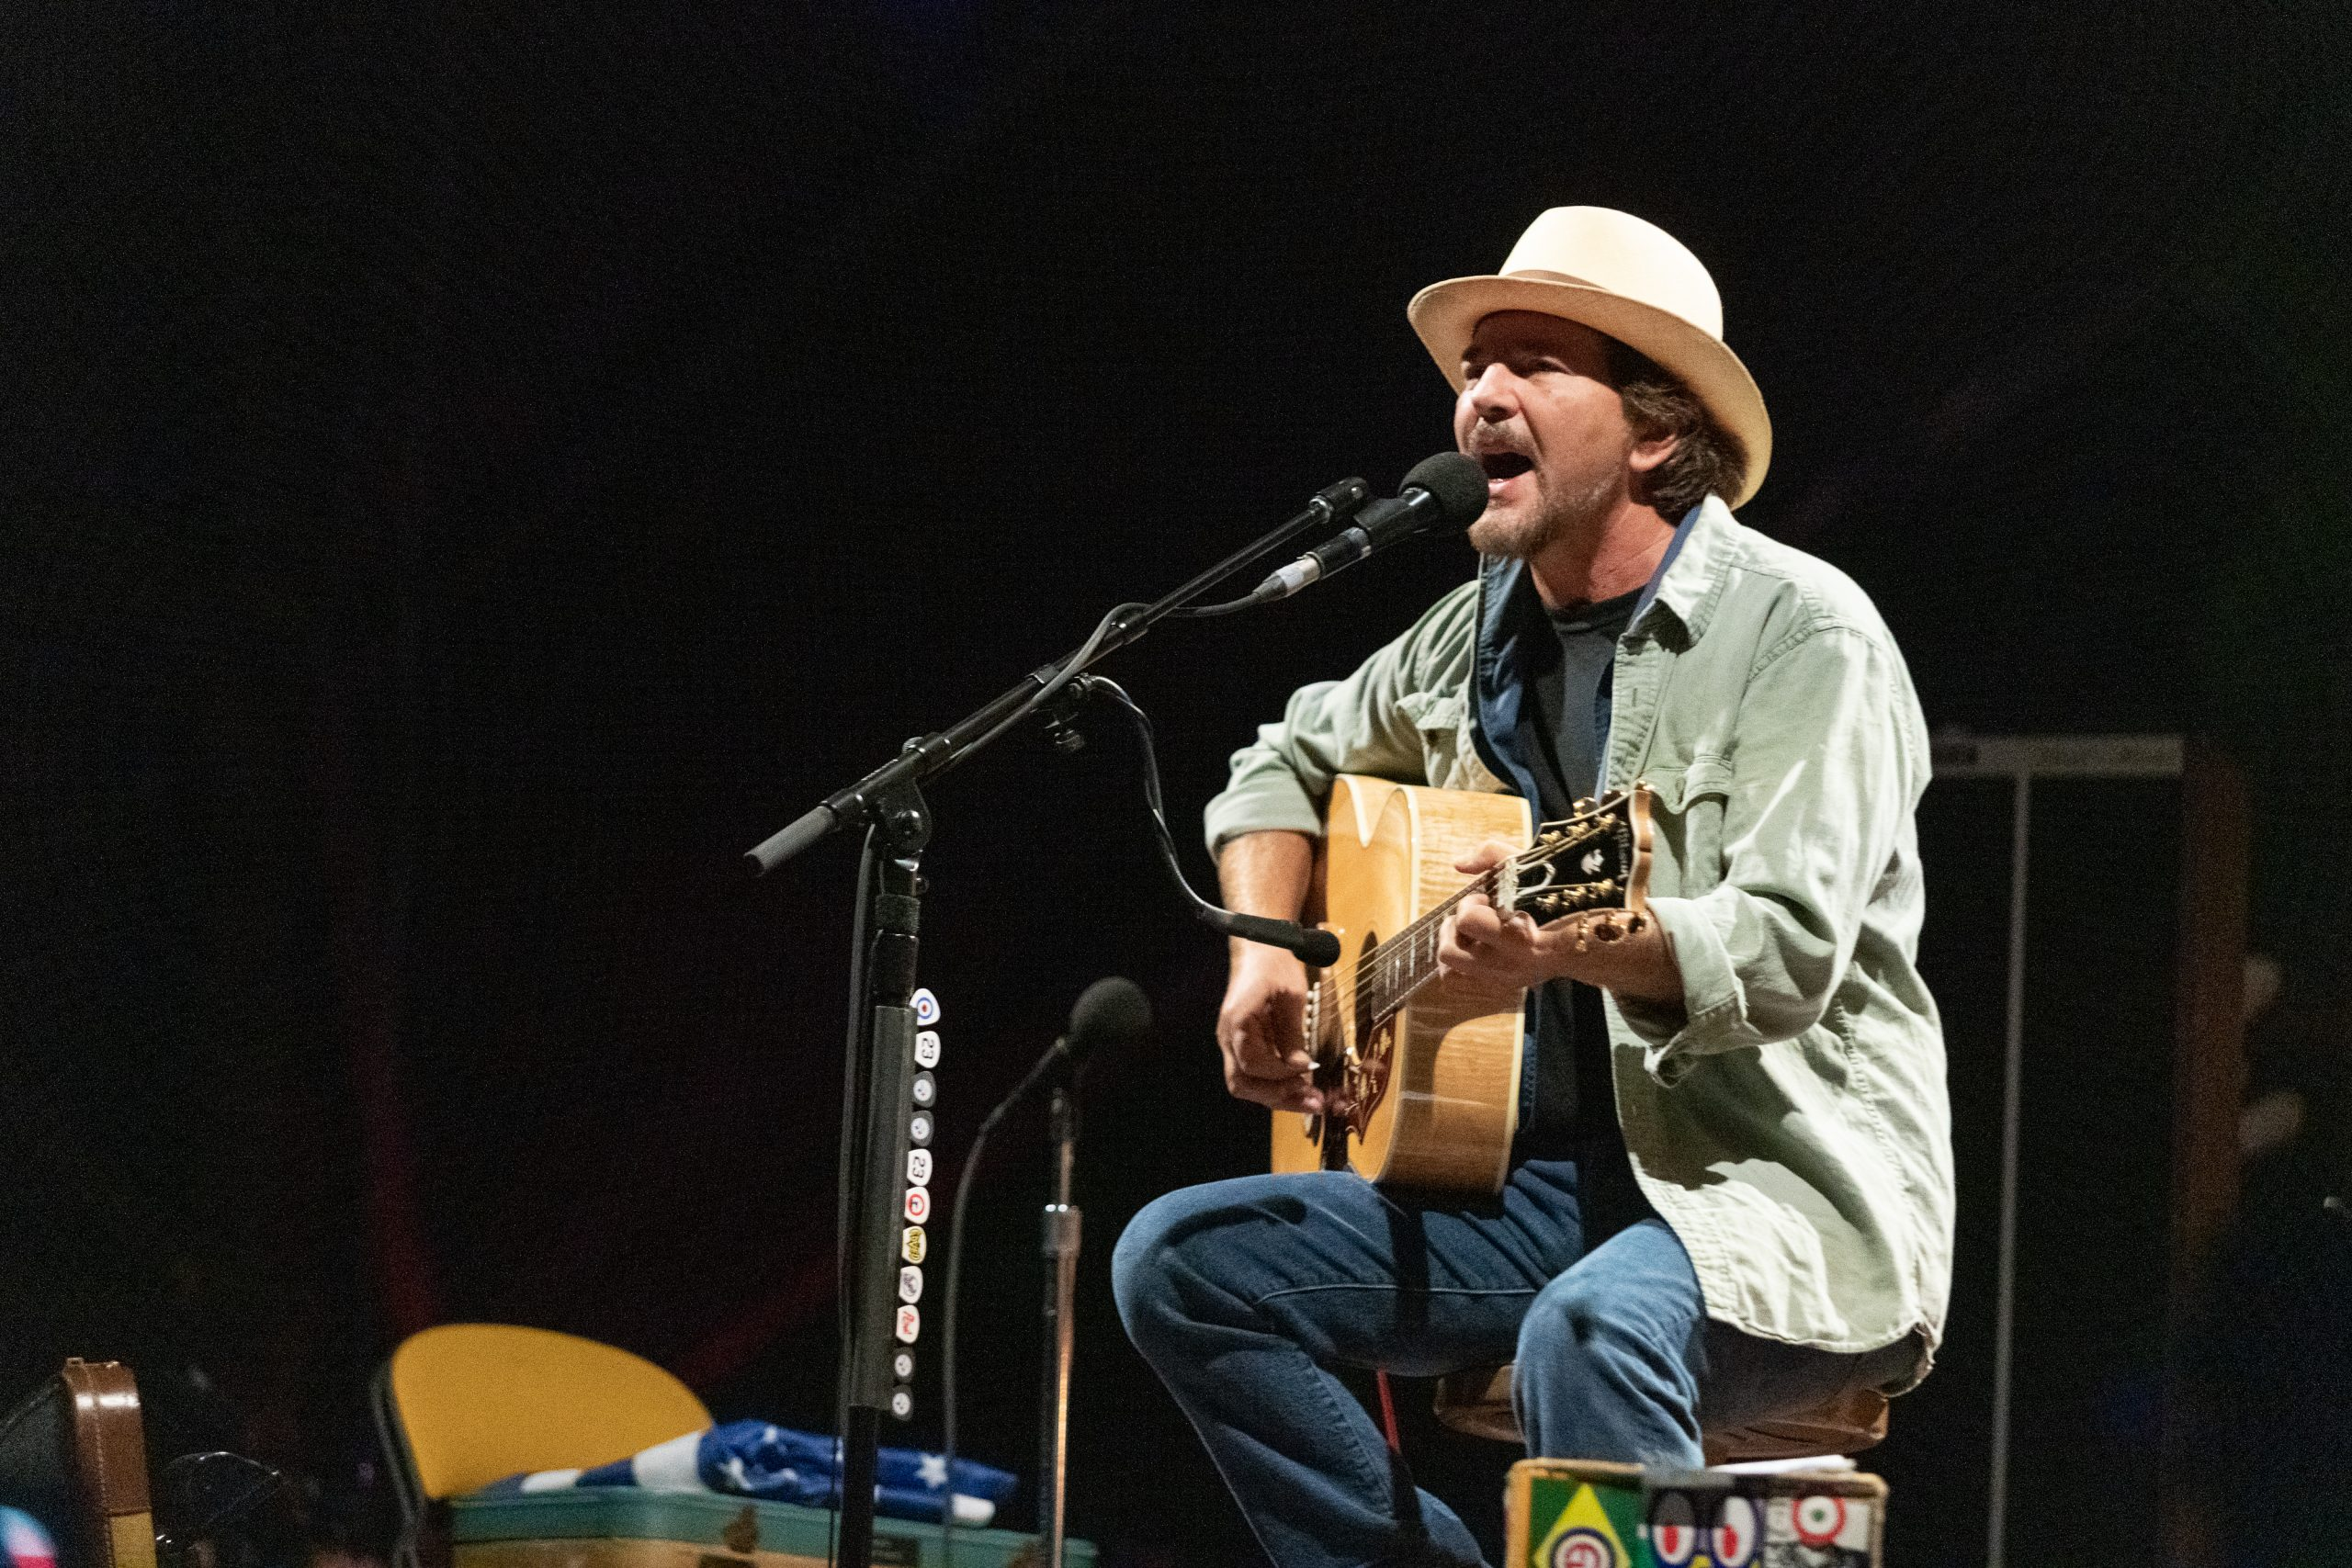 Eddie Vedder releases a solo song called